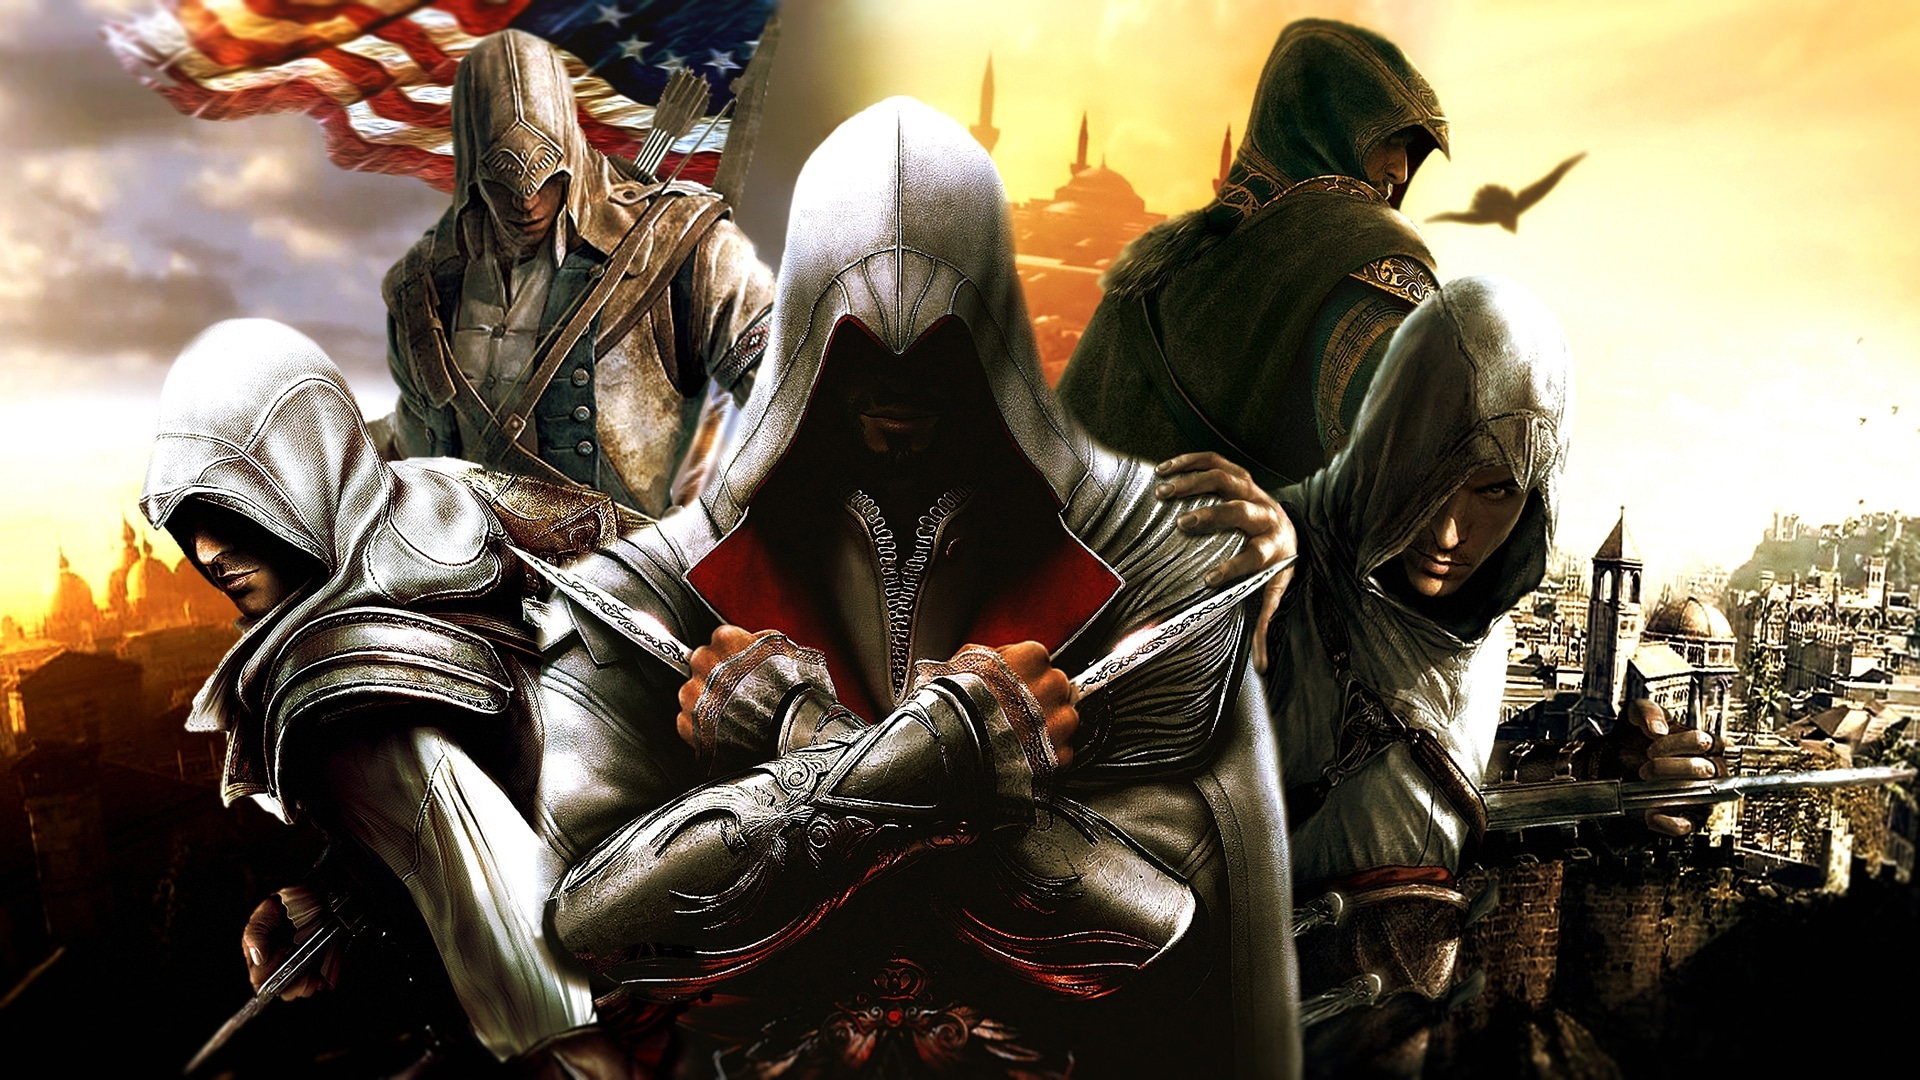 Assassins-Creed-assassins-creed-30820342-1920-1080